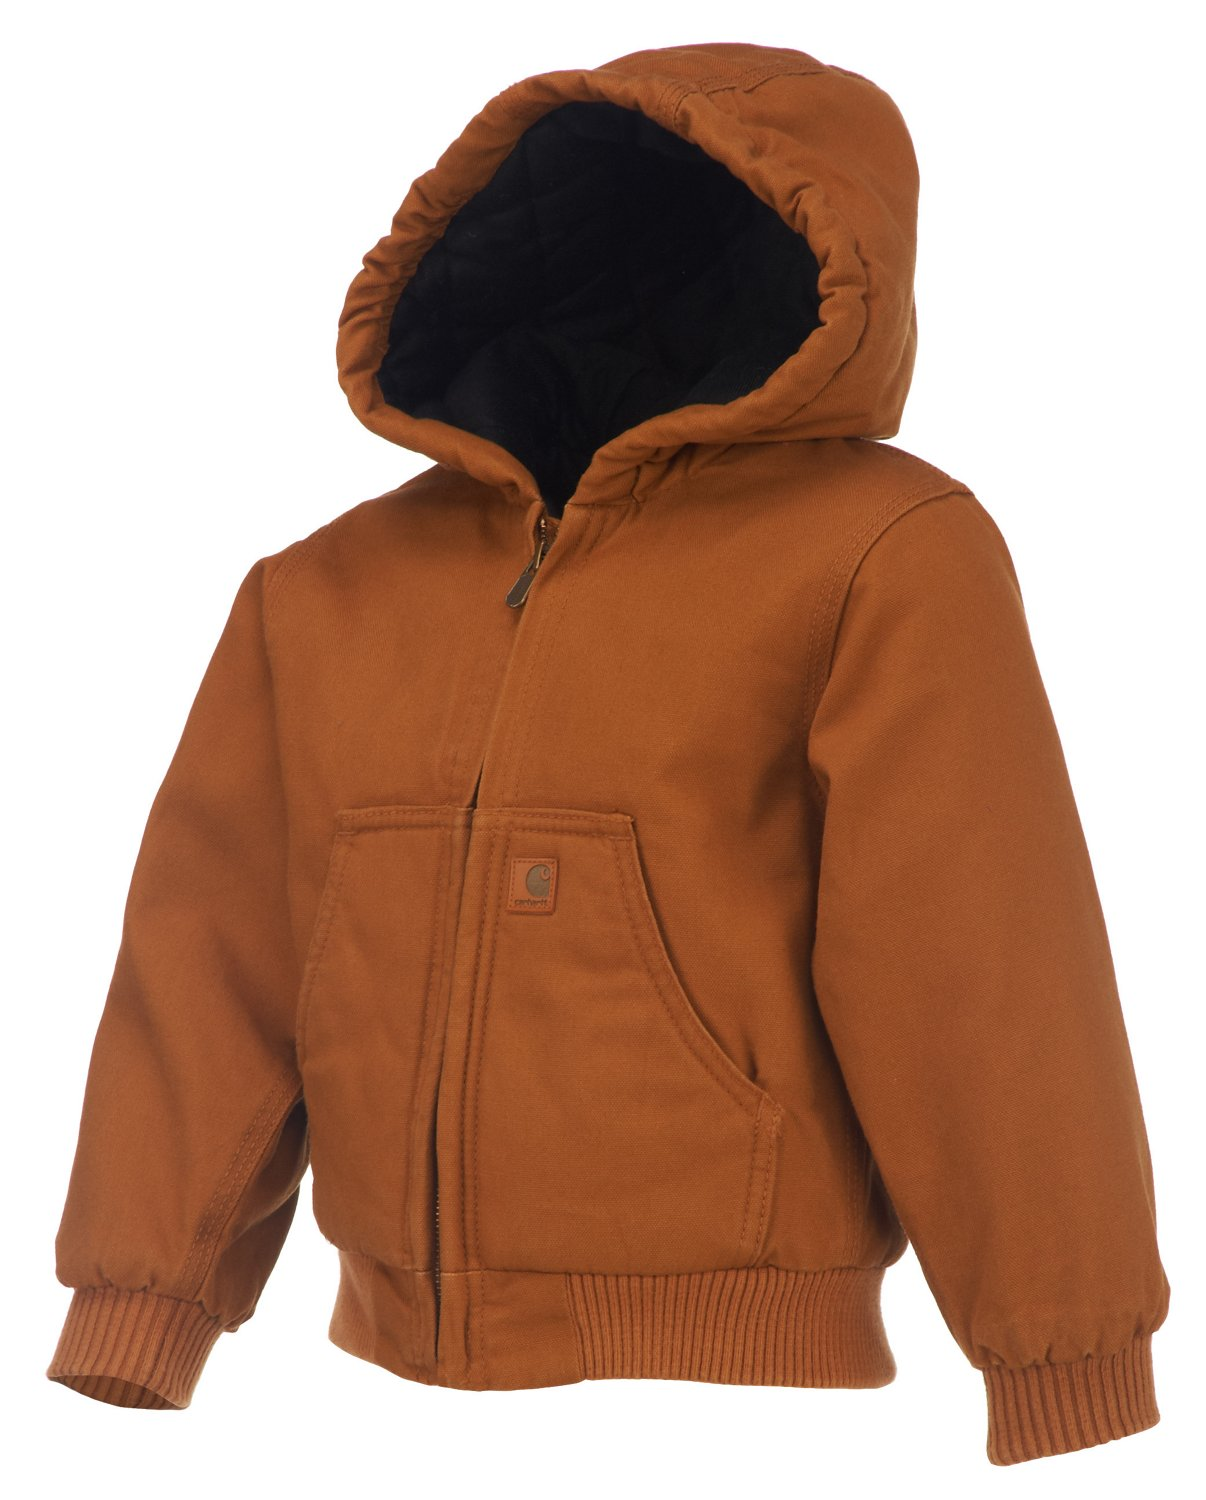 96ff9b359 Carhartt Toddlers' Active Jacket